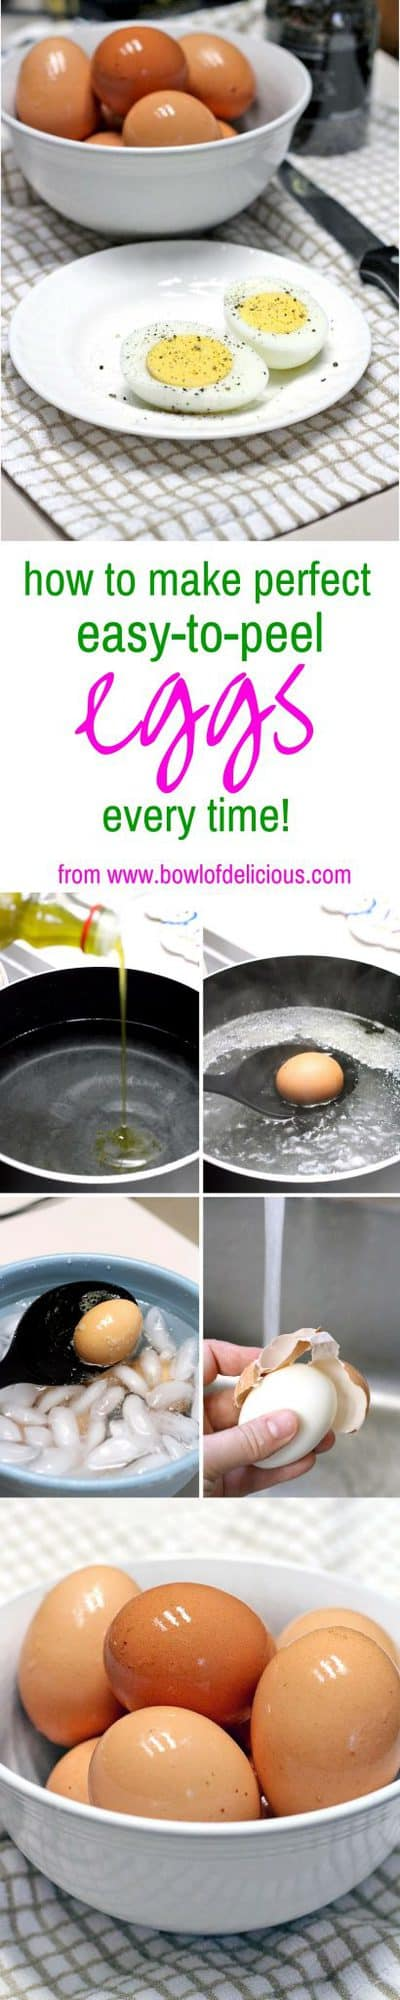 Adding Olive Oil To The Water Ensure Perfect Boiled Eggs Every Single Time!  Because The